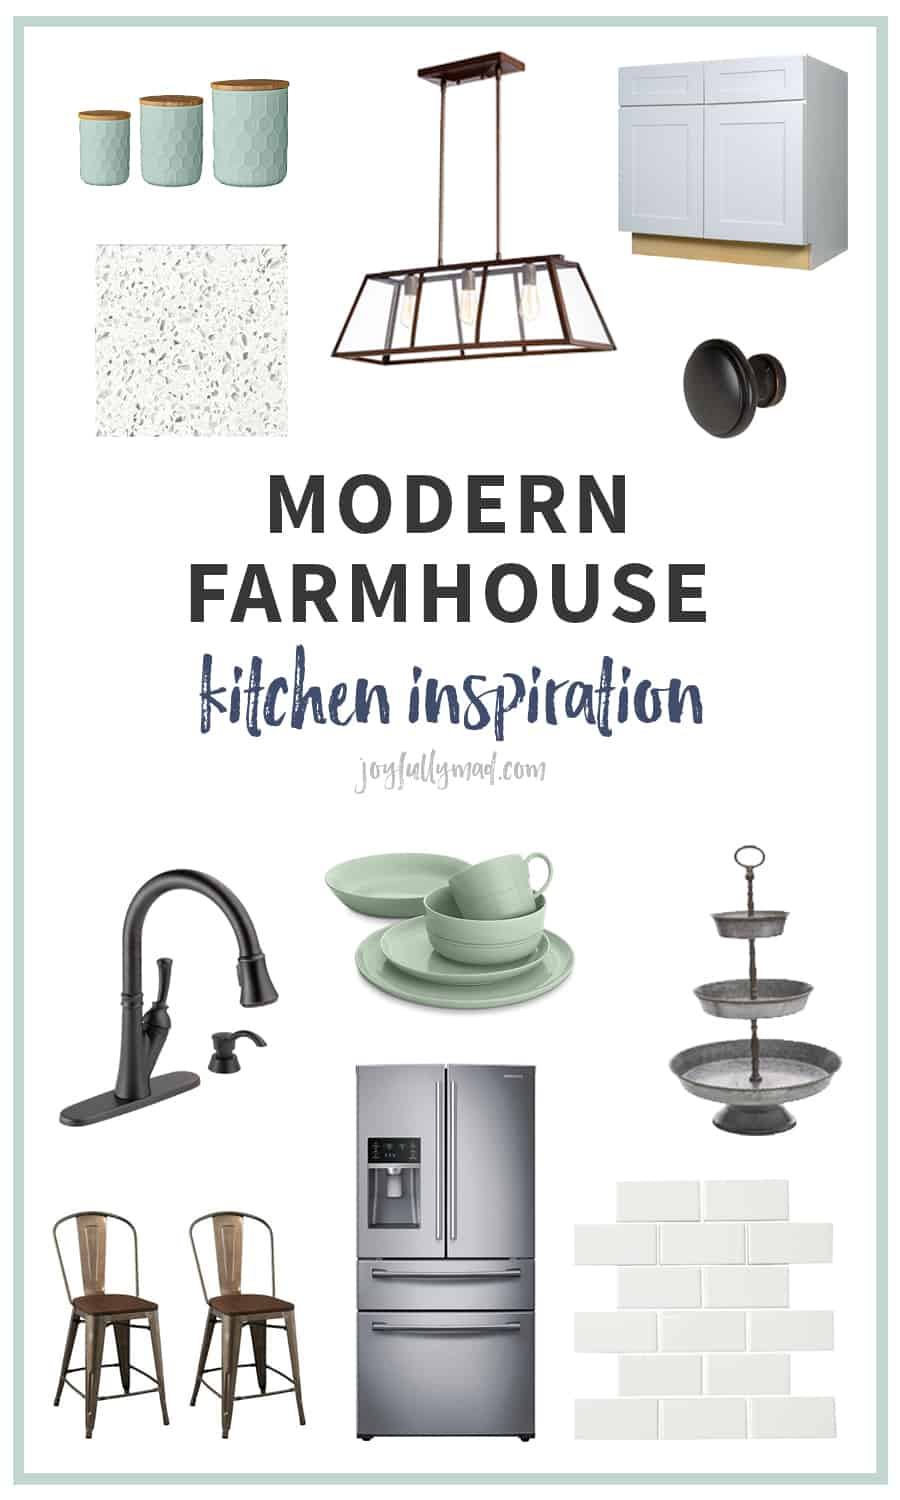 our dream modern farmhouse kitchen a joyfully mad kitchen planning your dream kitchen here s what inspired us when we built our dream modern farmhouse